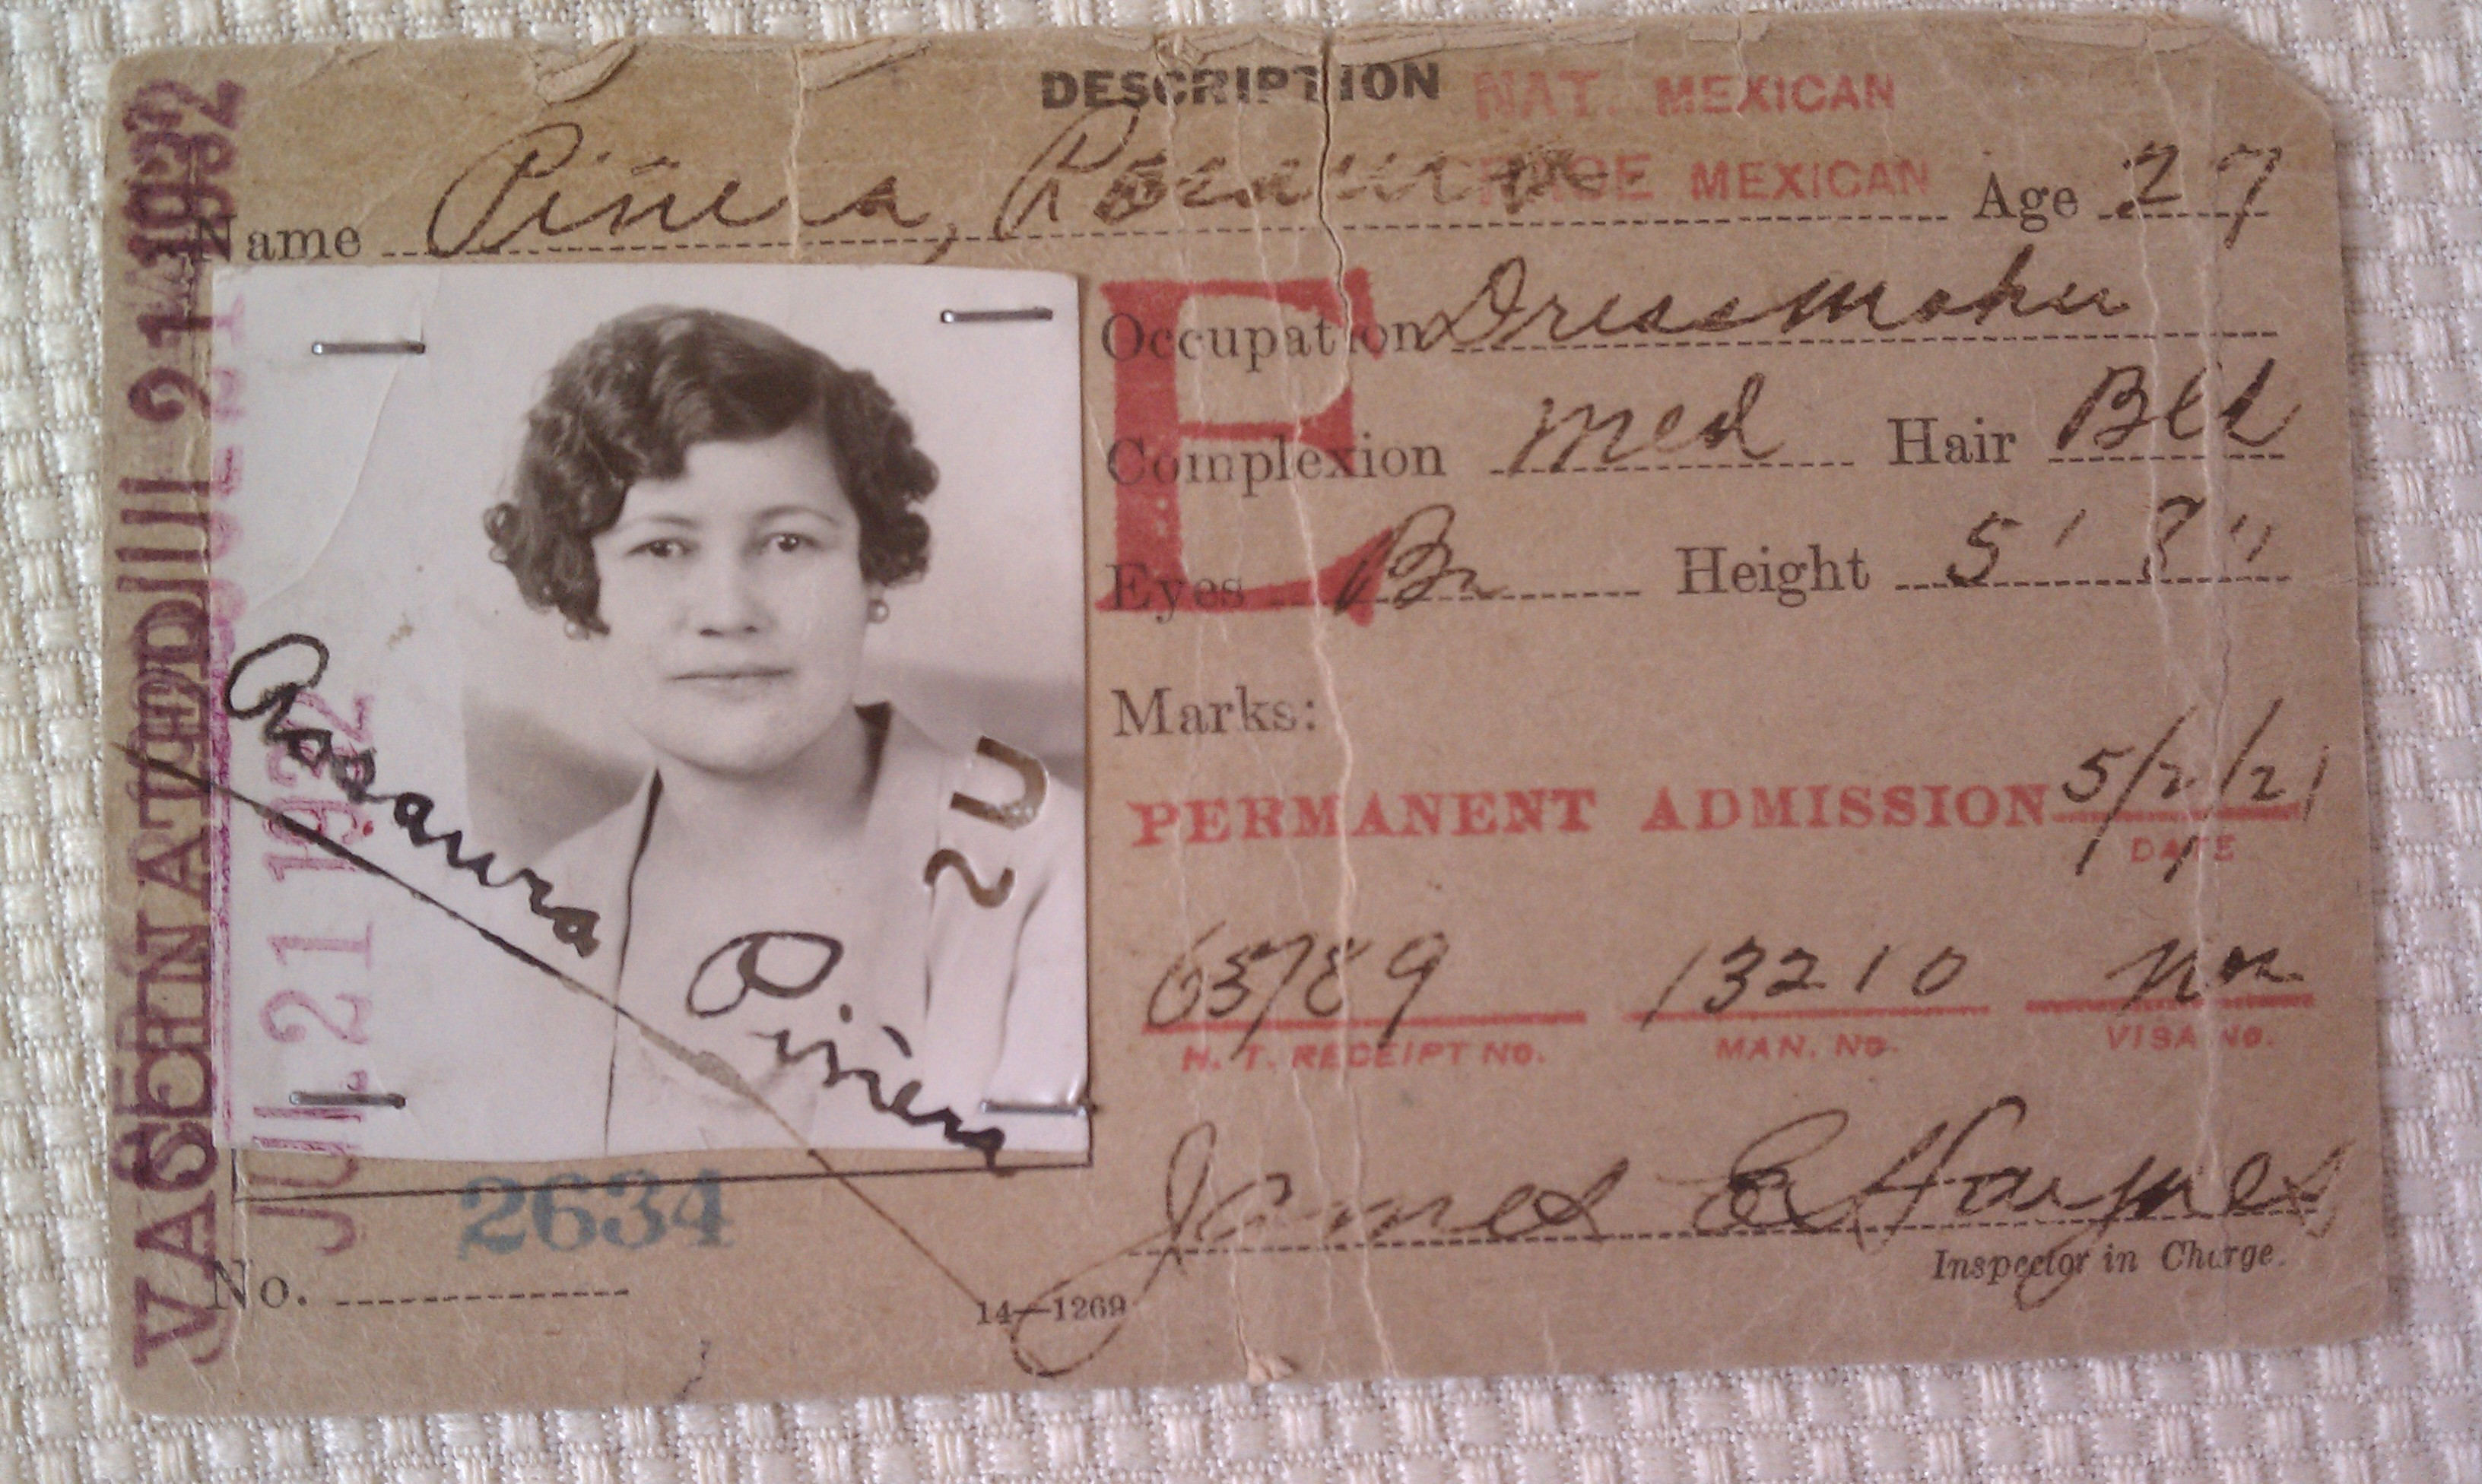 An immigrant ID card from the 1920s and 30s for Rosaura Piñera, who later became a US citizen at age 100.